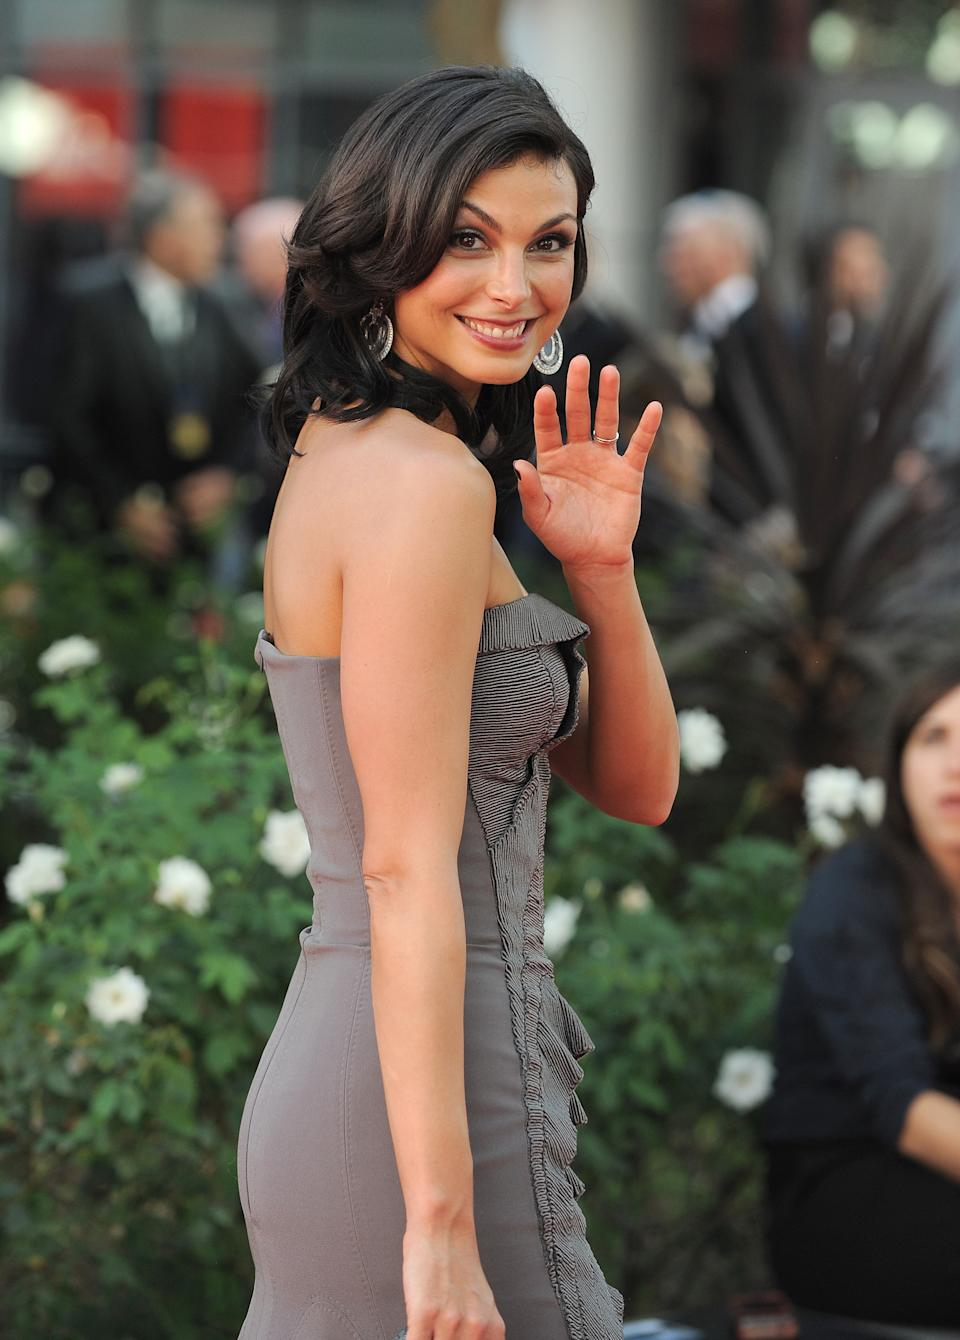 Actress Morena Baccarin arrives at the 64th Primetime Emmy Awards at the Nokia Theatre on Sunday, Sept. 23, 2012, in Los Angeles.  (Photo by Jordan Strauss/Invision/AP)